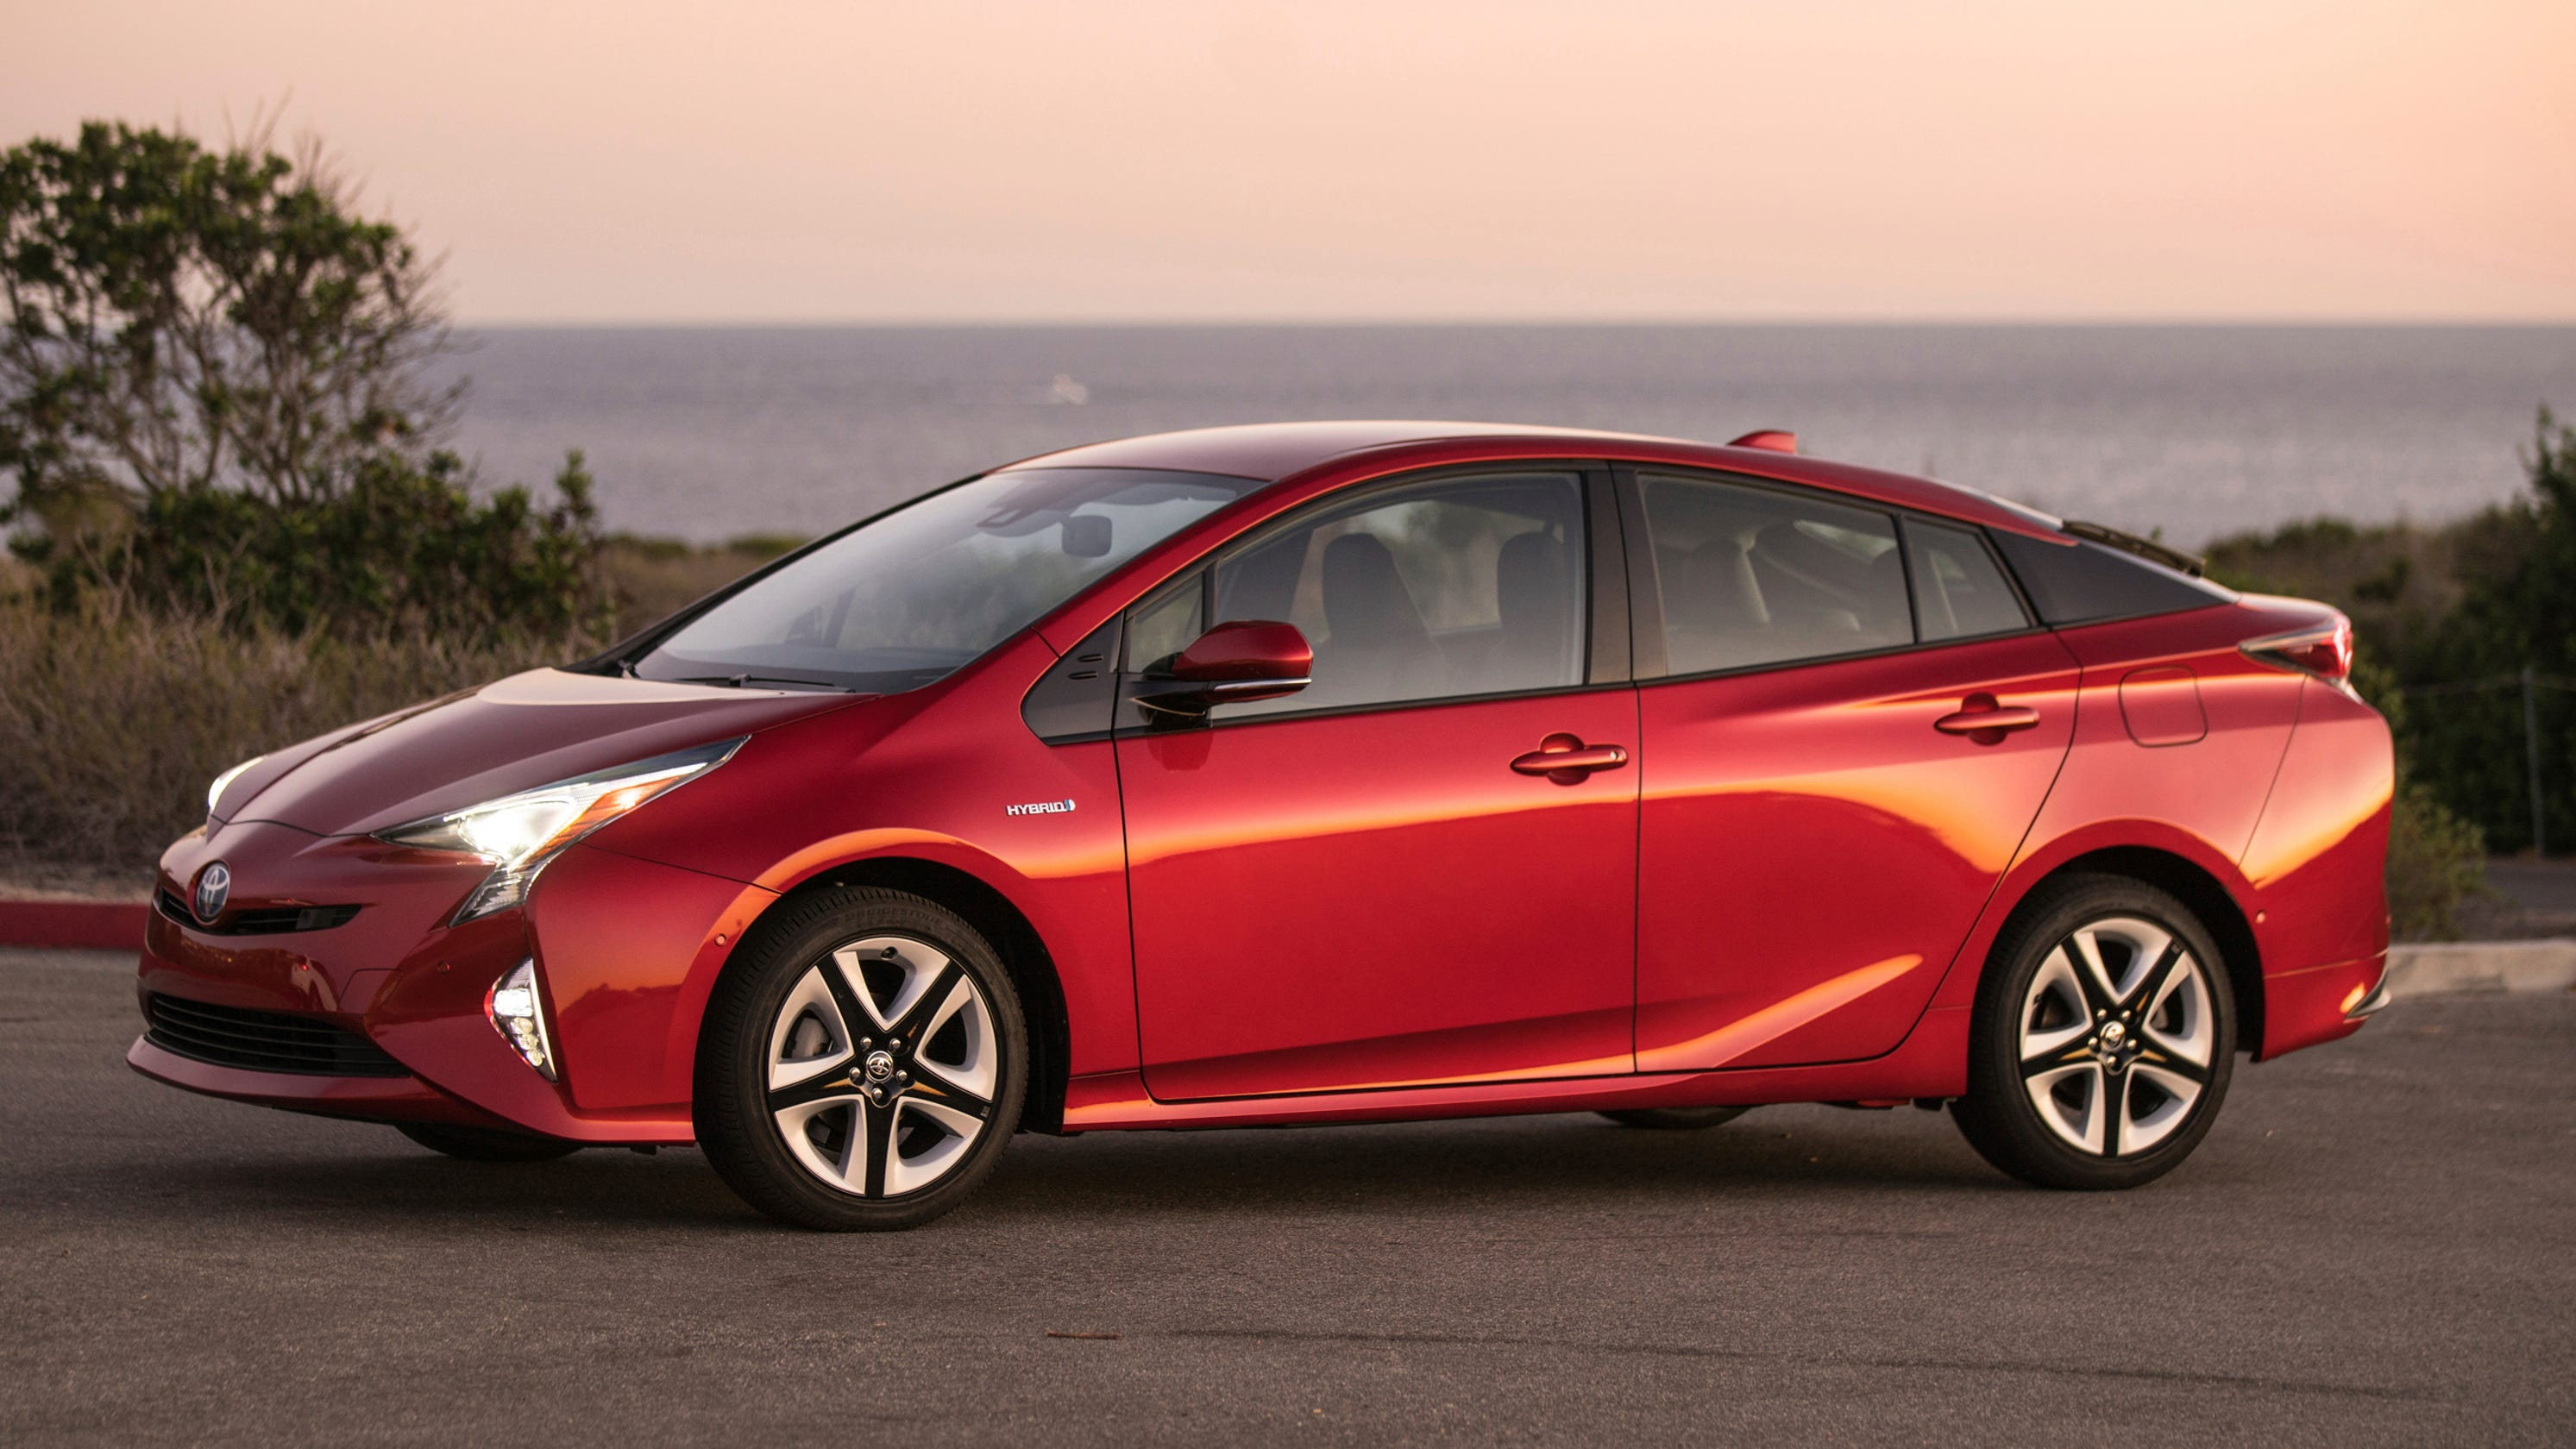 Toyota Recalls Prius Hybrid Car To Fix Defect That Could Ignite Fires